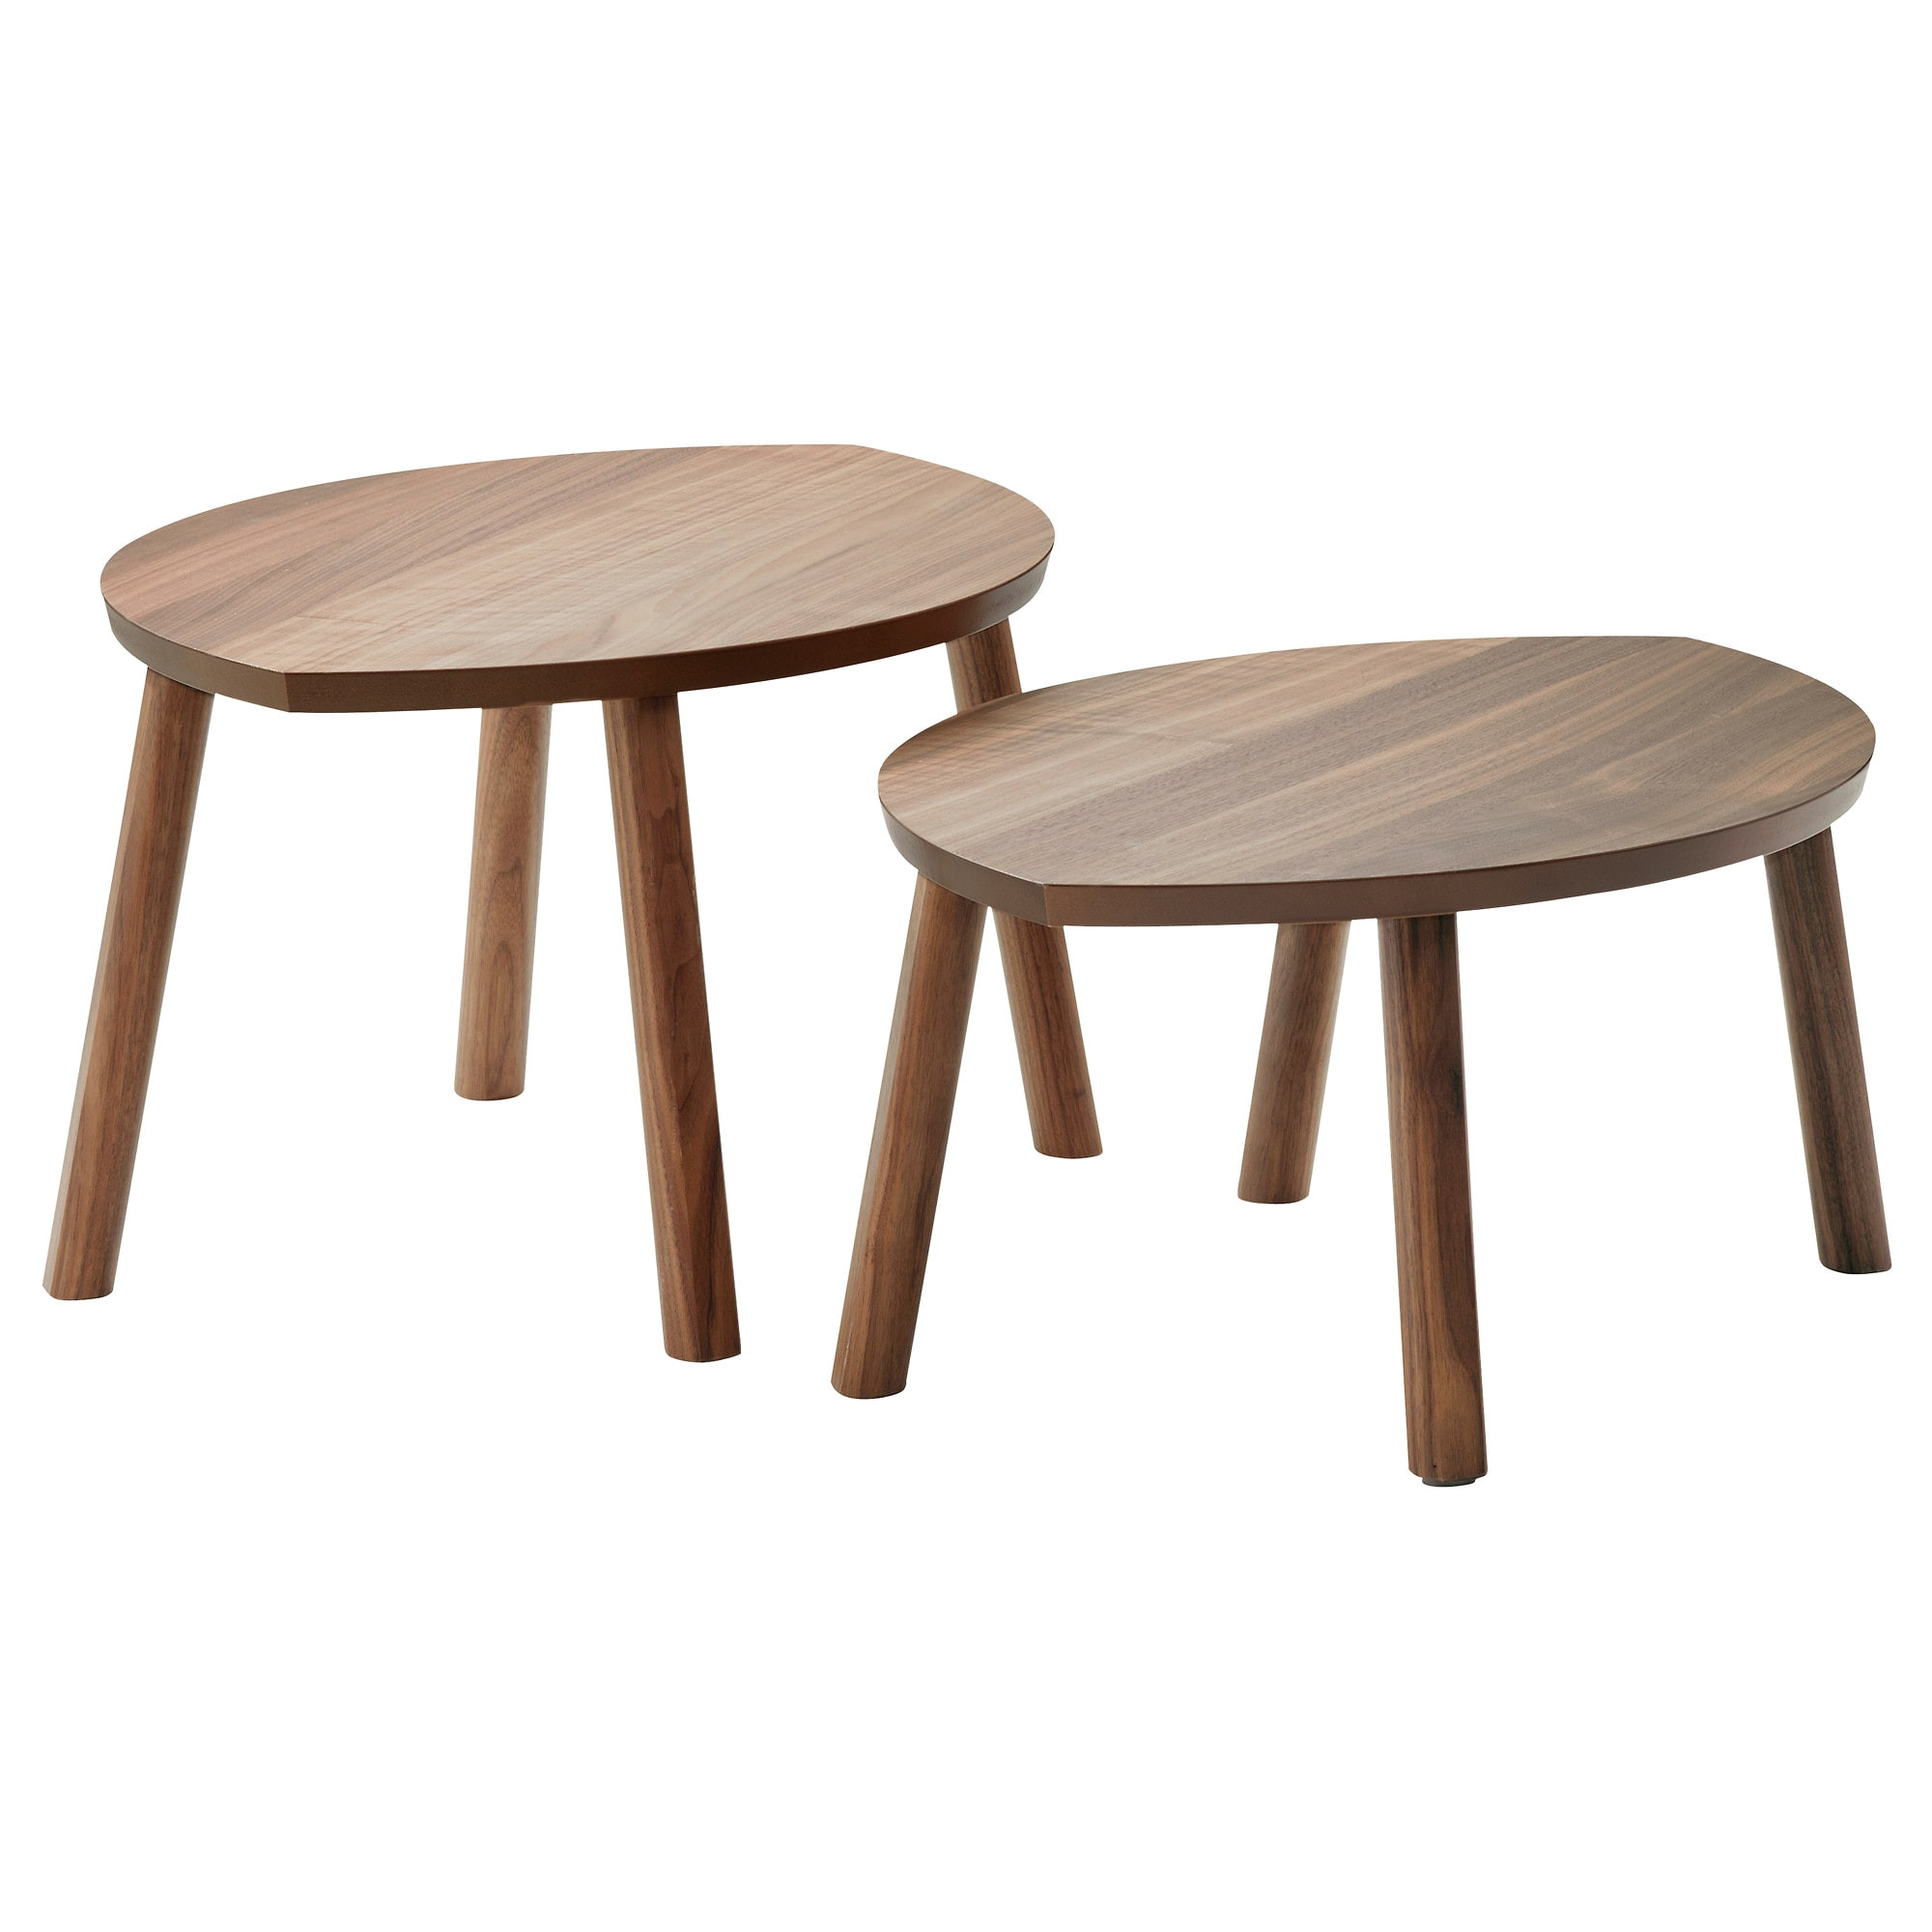 ikea stockholm nest of tables set of 2